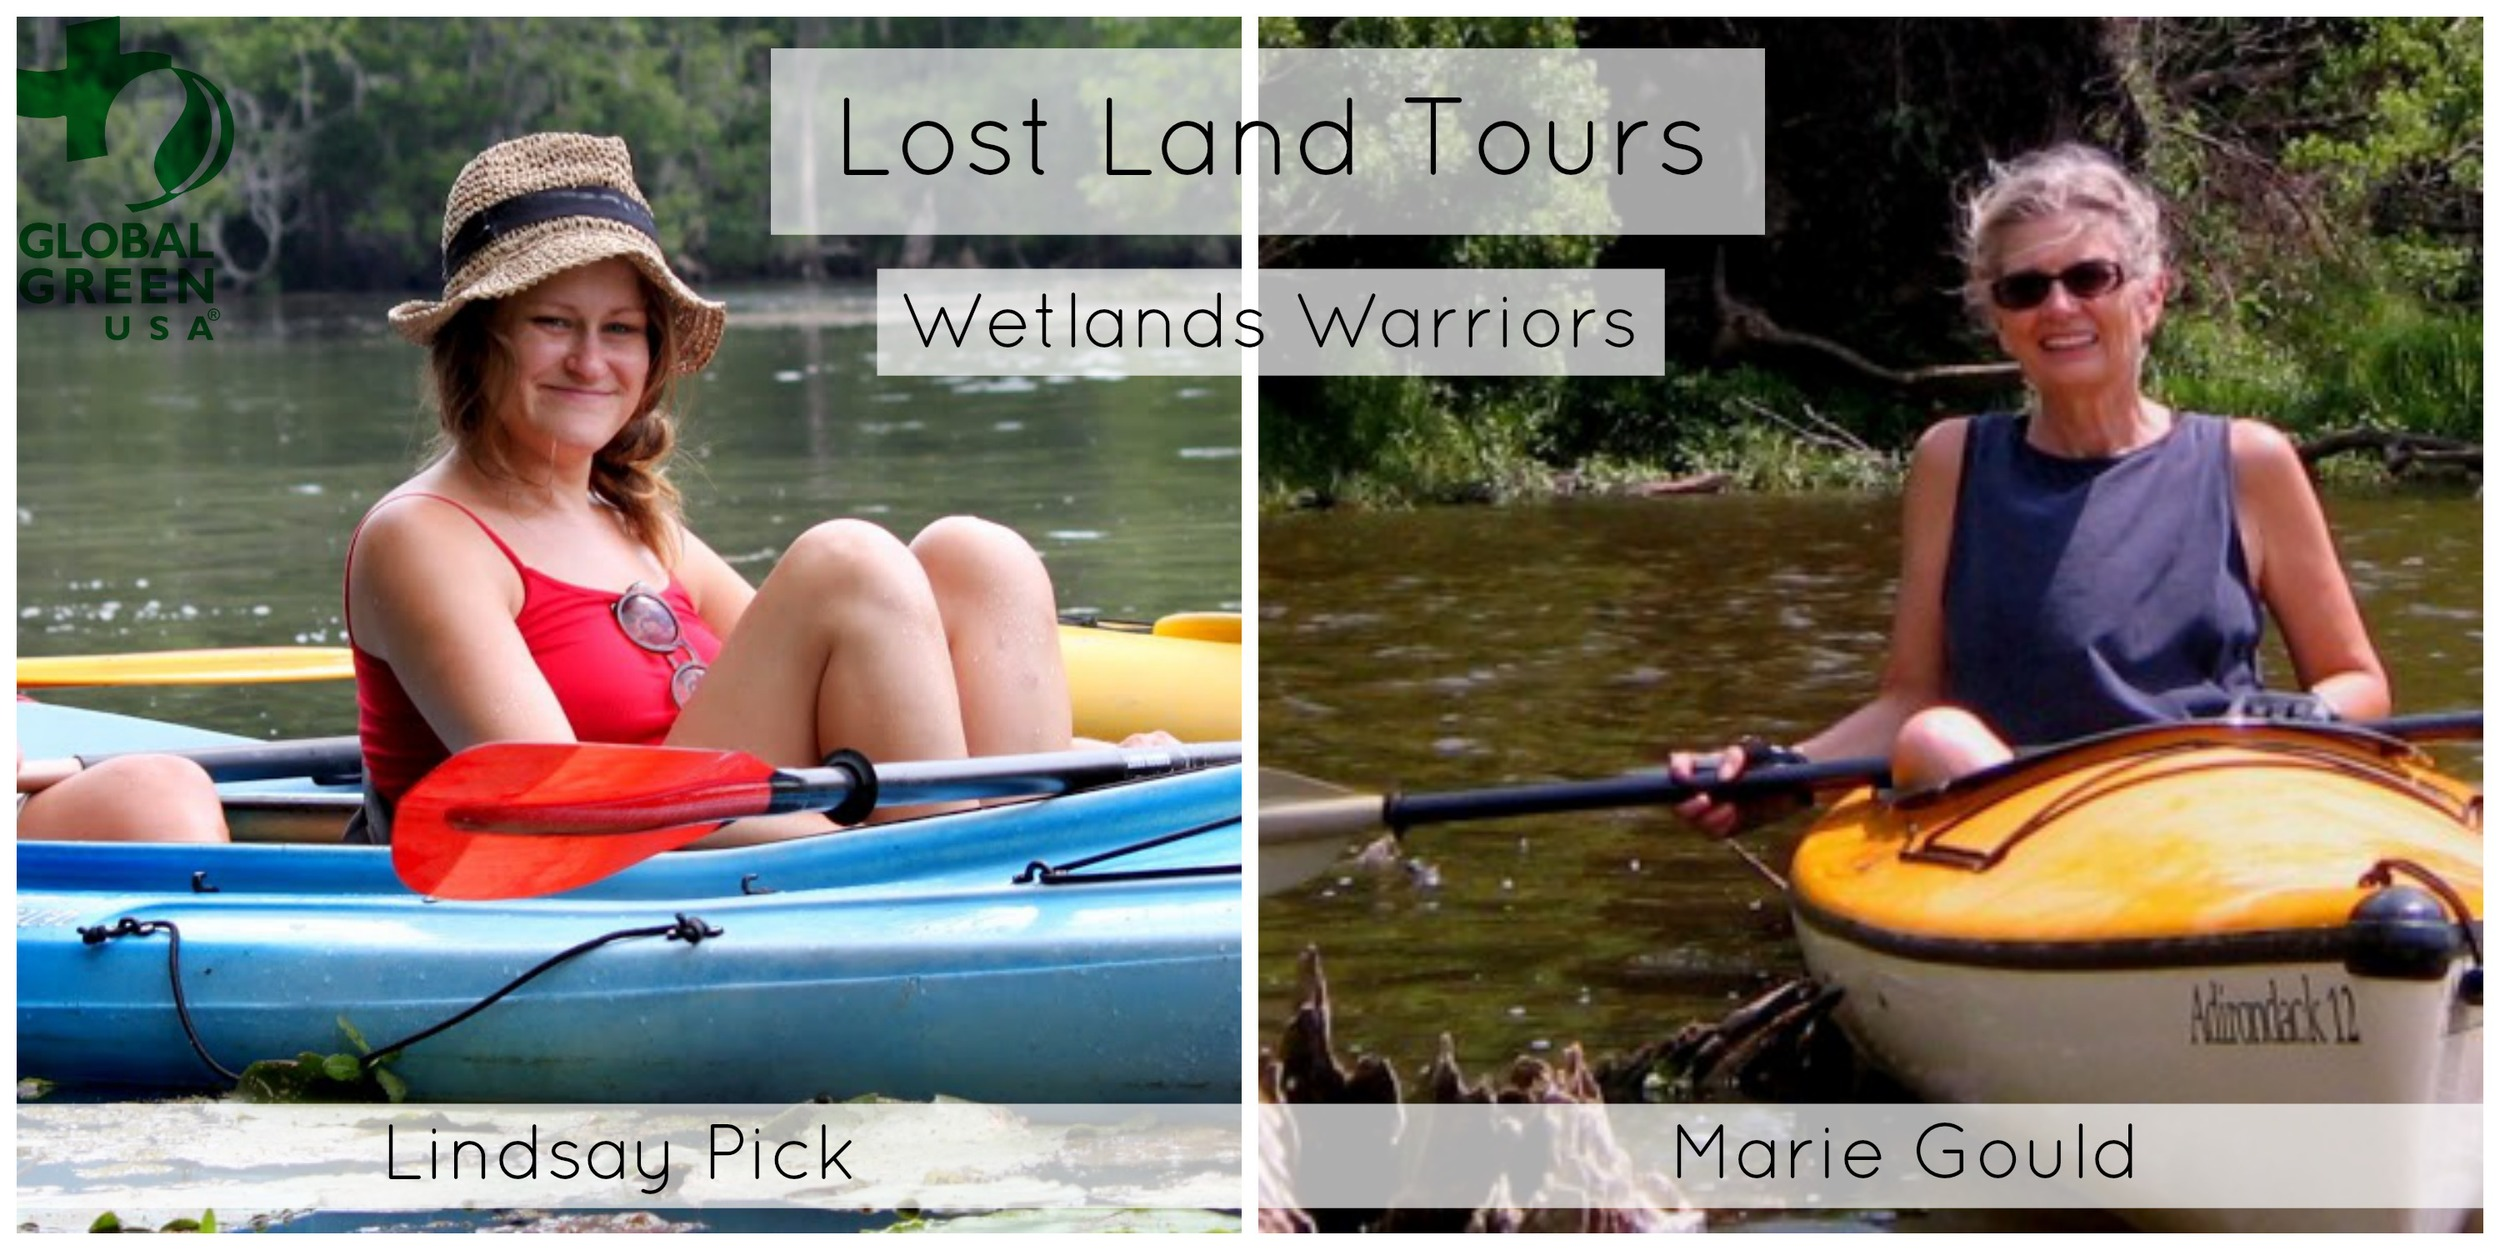 Global Green USA Wetlands Warriors Lost Lands Tours